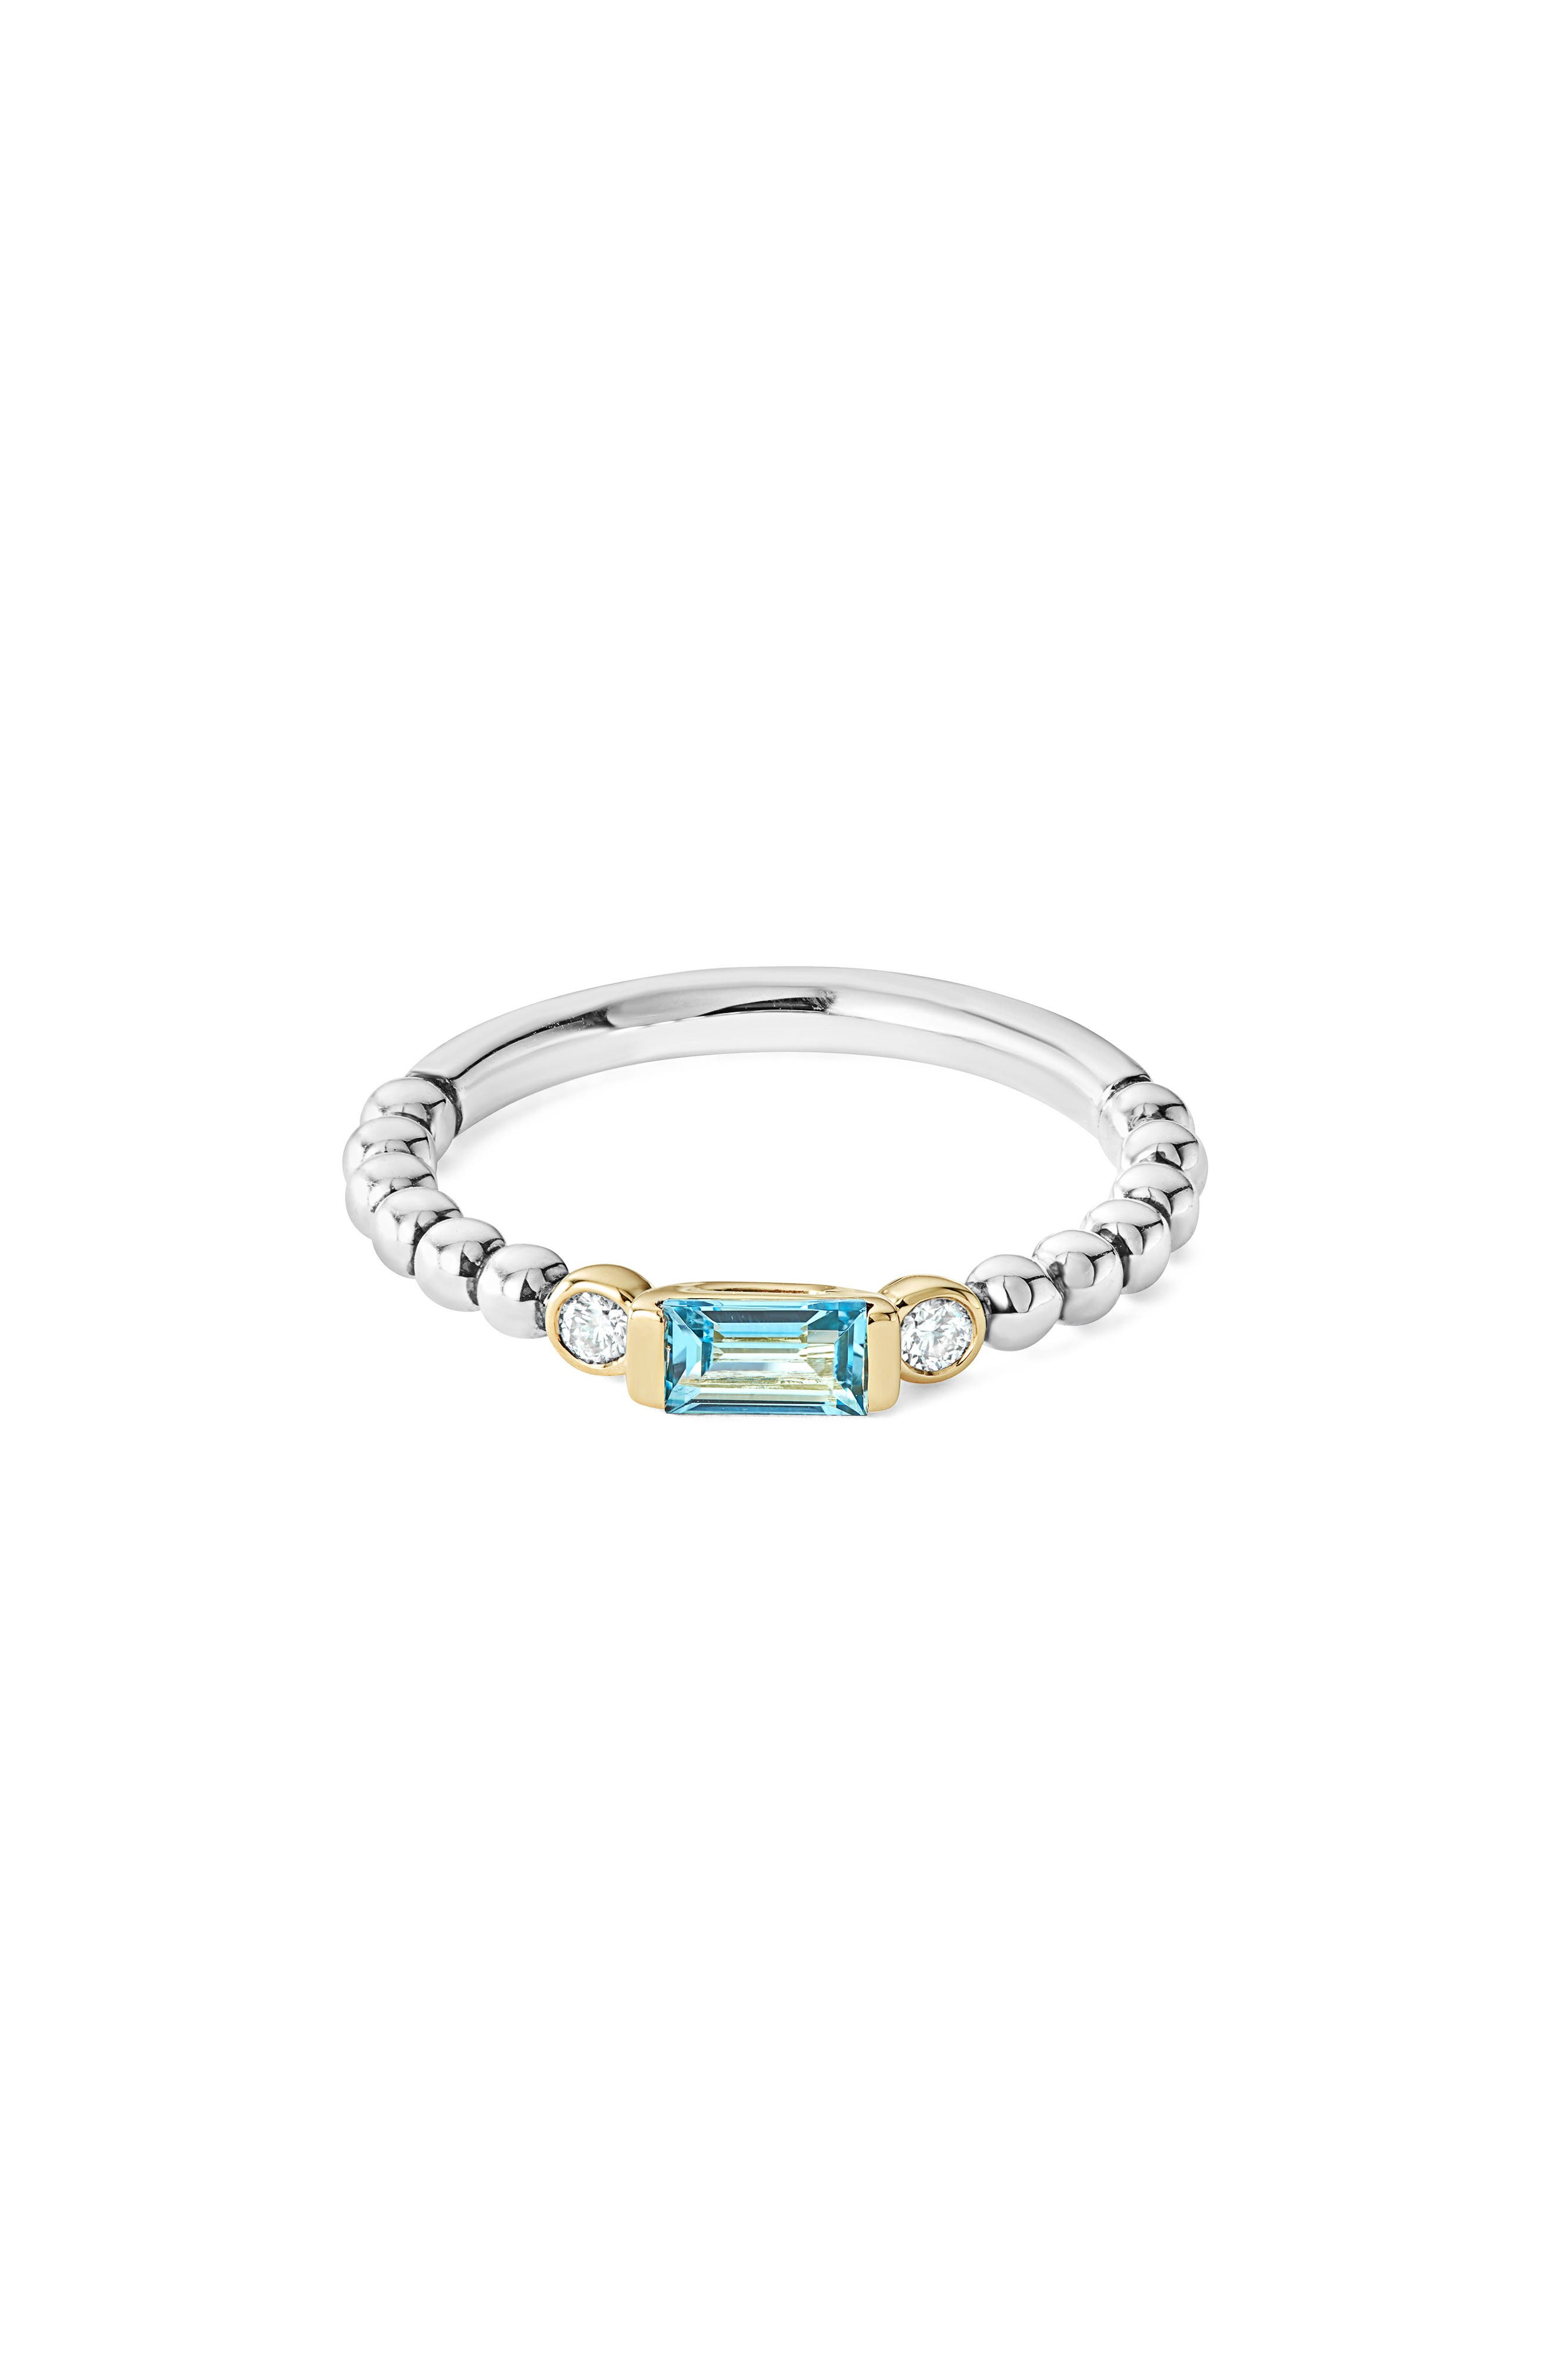 Gemstone Baguette and Diamond Beaded Band Ring,                         Main,                         color, Silver/ 18K Gold/ Blue Topaz